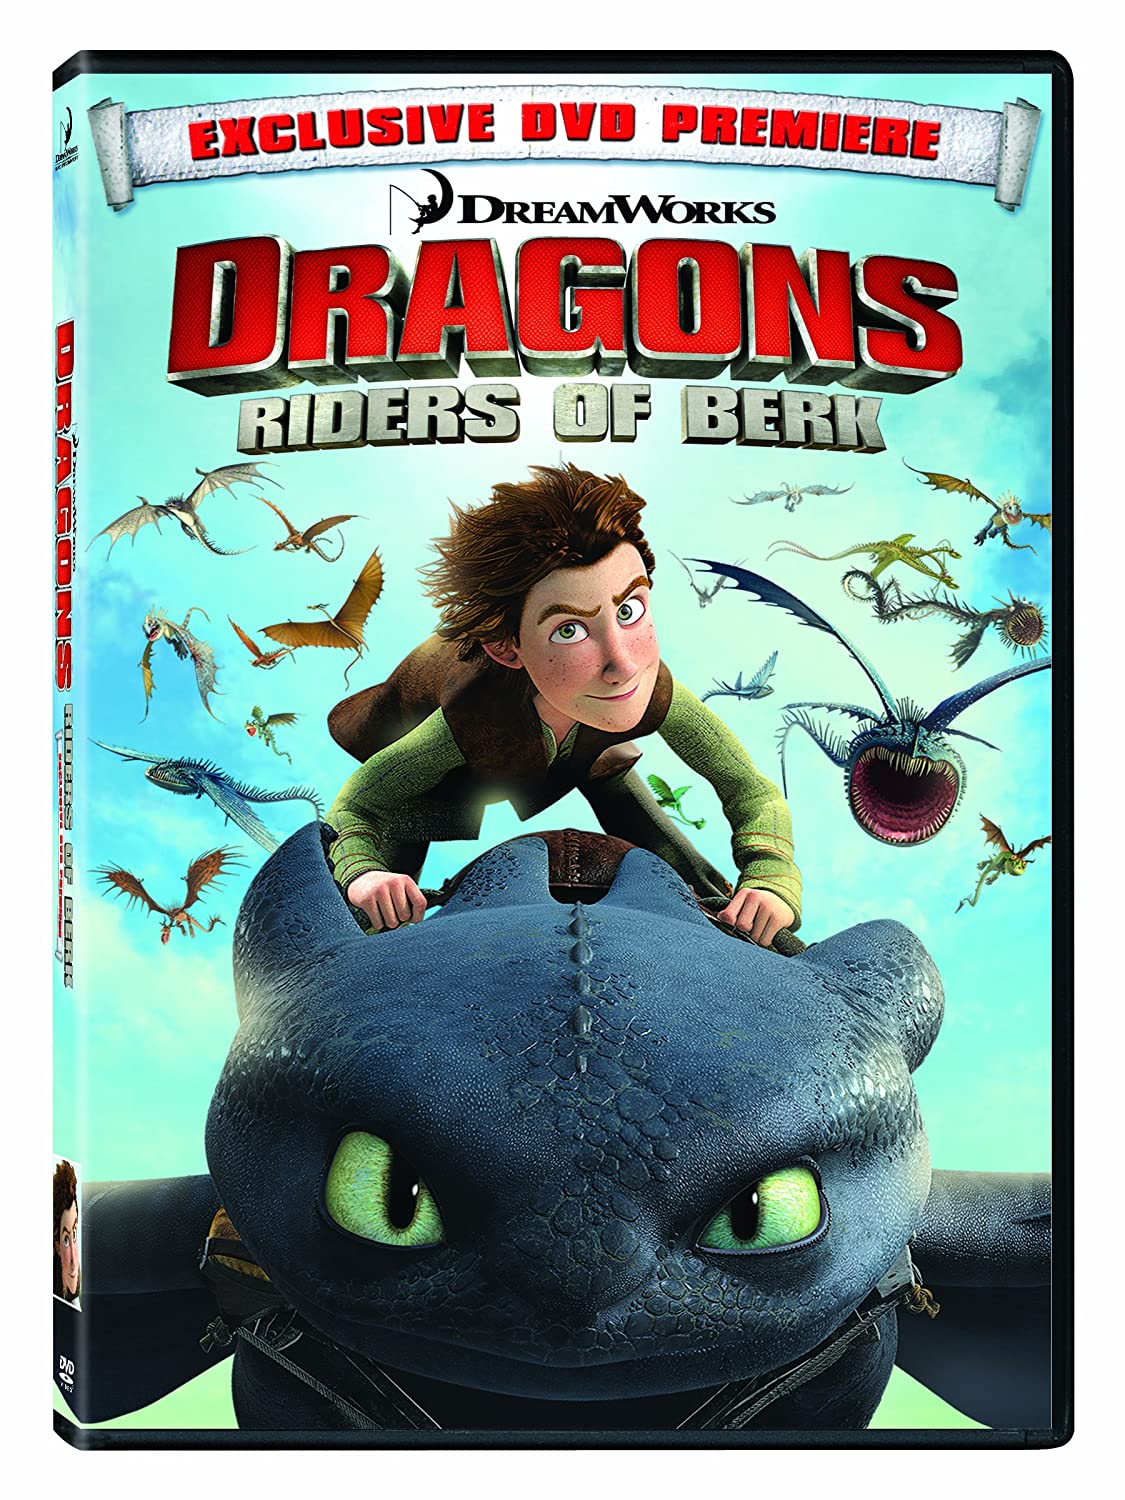 Amazon dragons riders of berk jay baruchel america ferrera amazon dragons riders of berk jay baruchel america ferrera movies tv ccuart Gallery